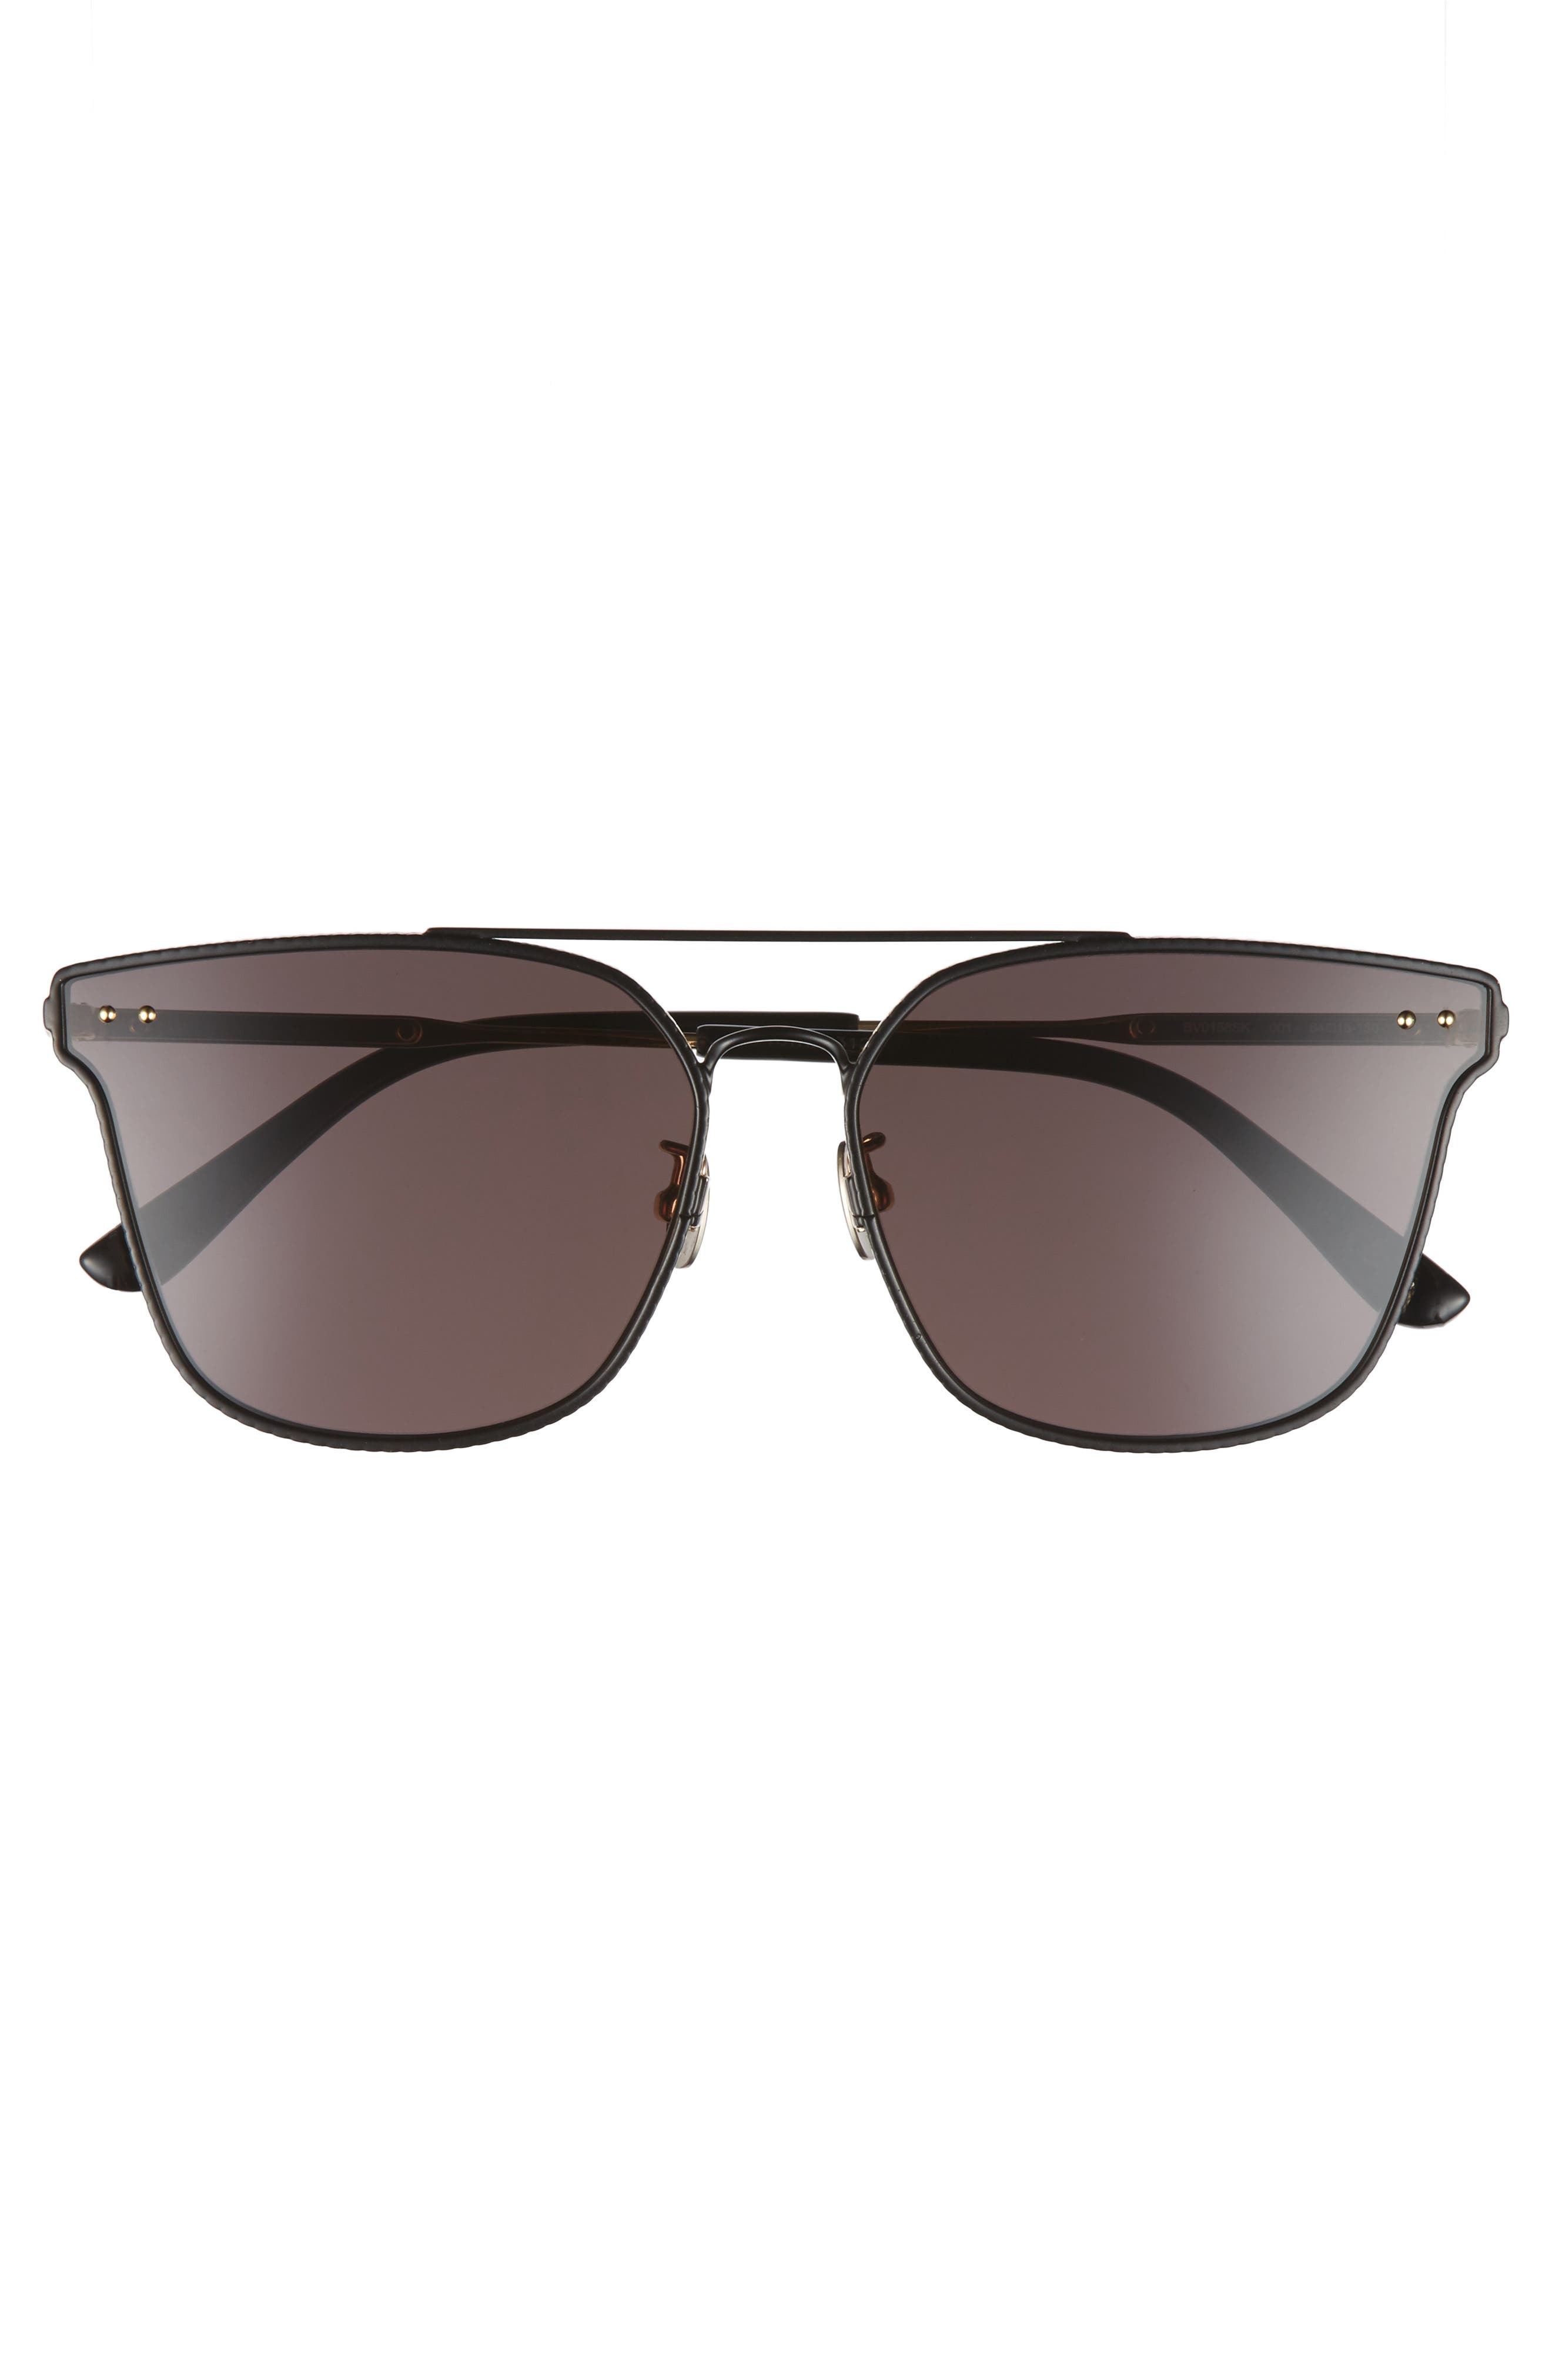 64mm Sunglasses,                             Alternate thumbnail 3, color,                             BLACK